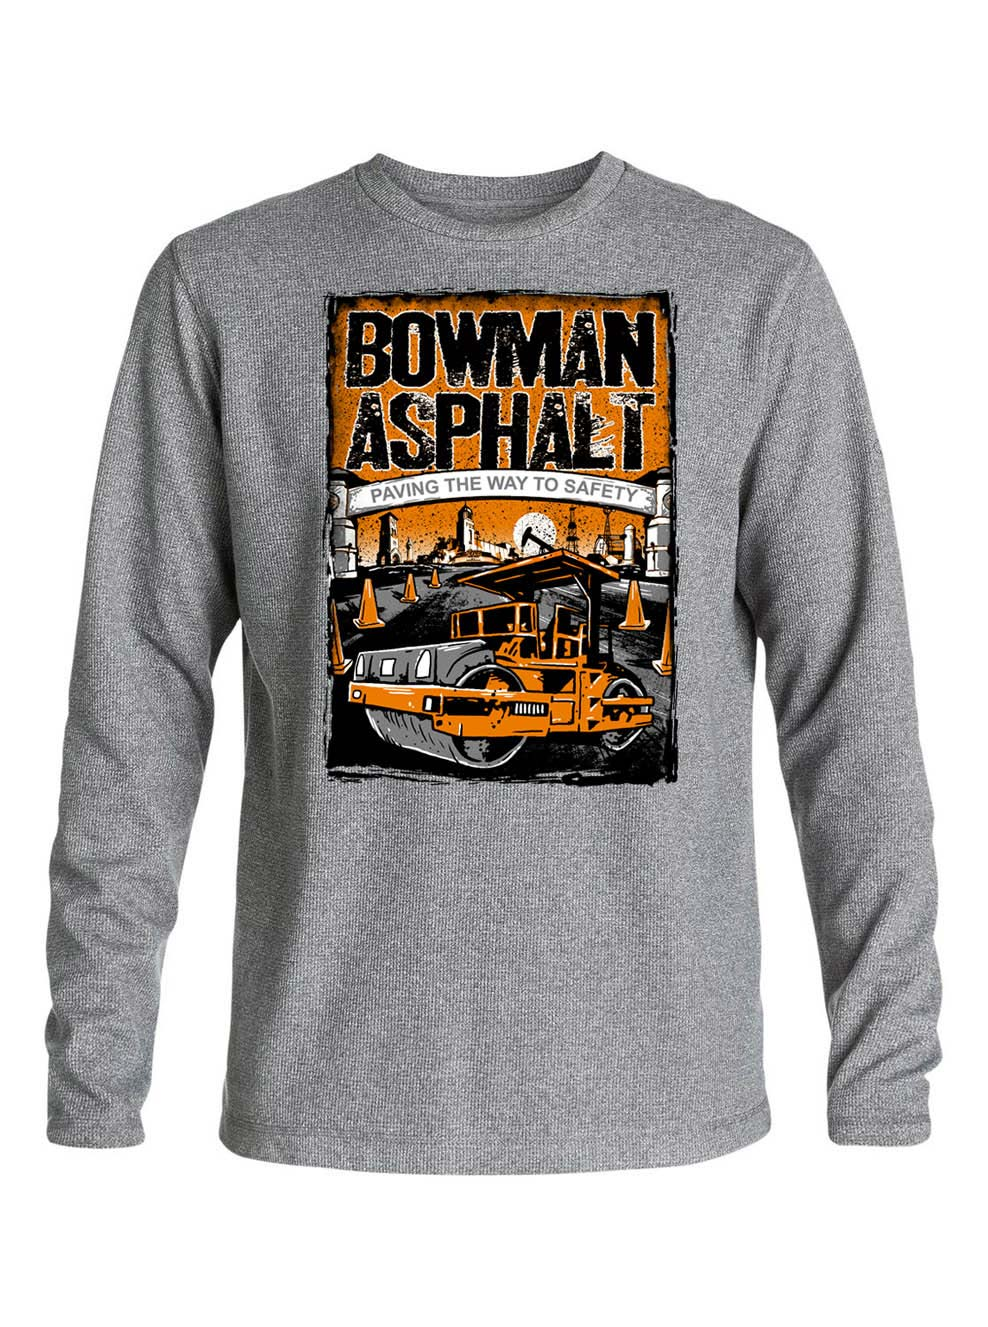 Apparel Design | Bowman Asphalt